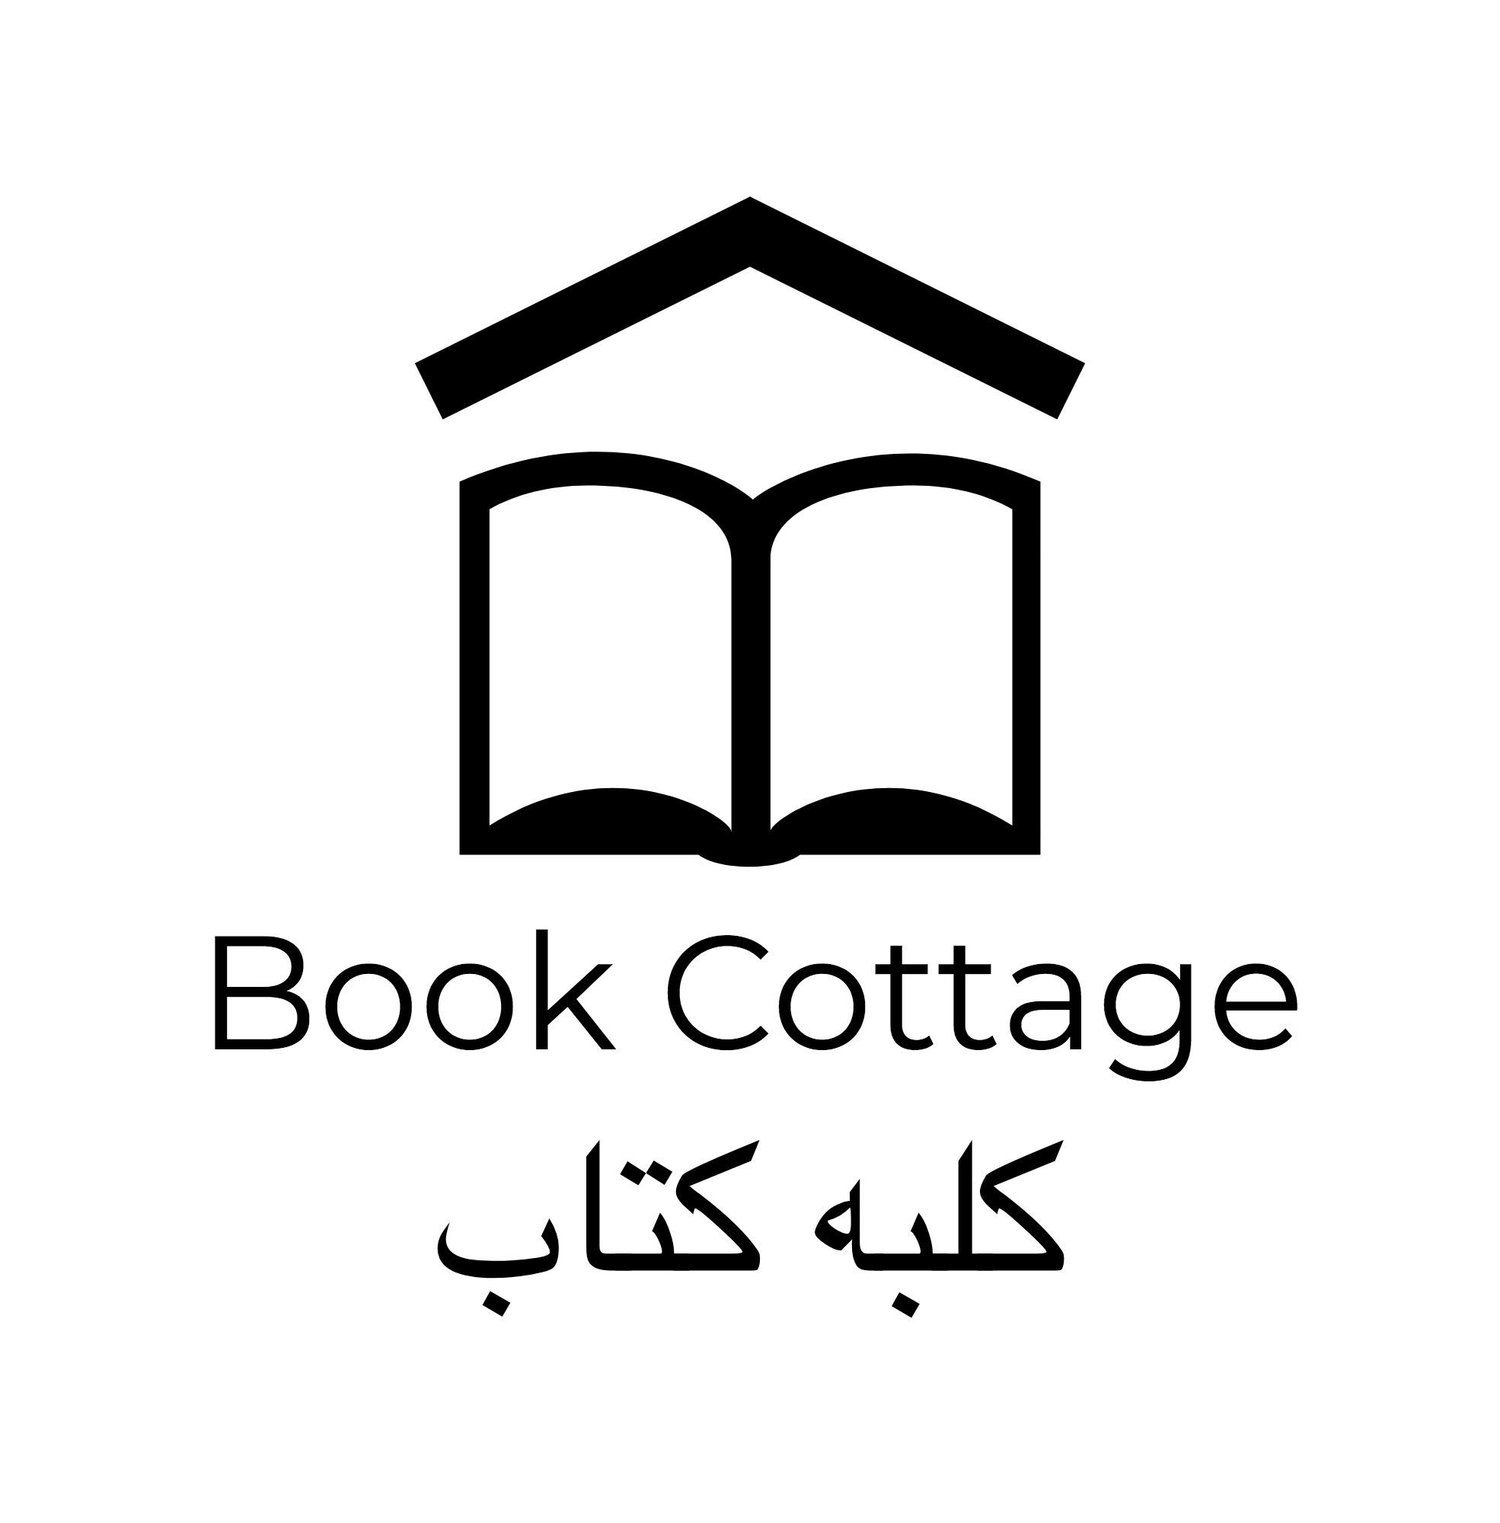 Book Cottage